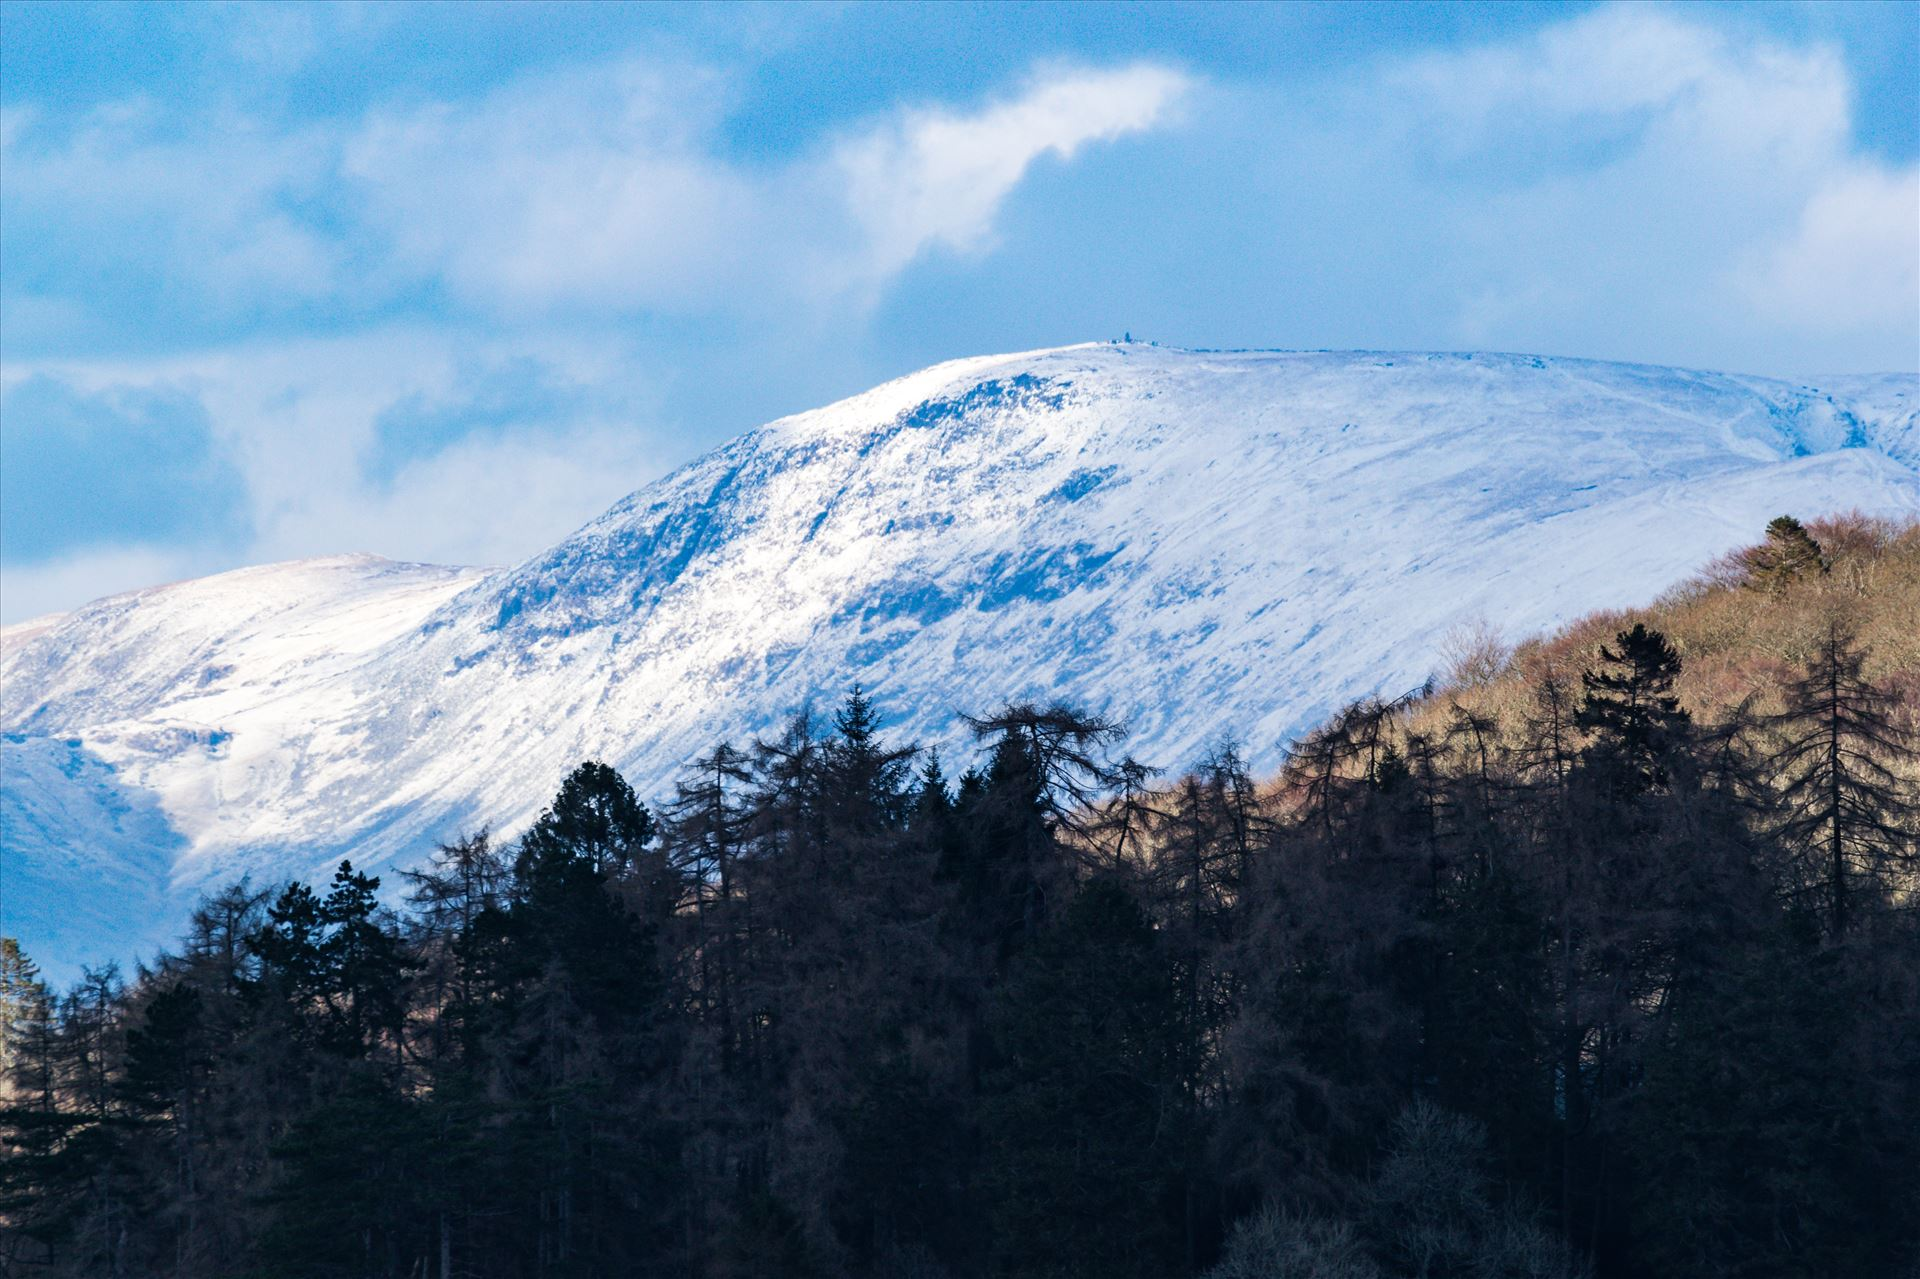 Lake Windermere Snowy Mountains - Taken from the south of the lake looking north, by AJ Stoves Photography